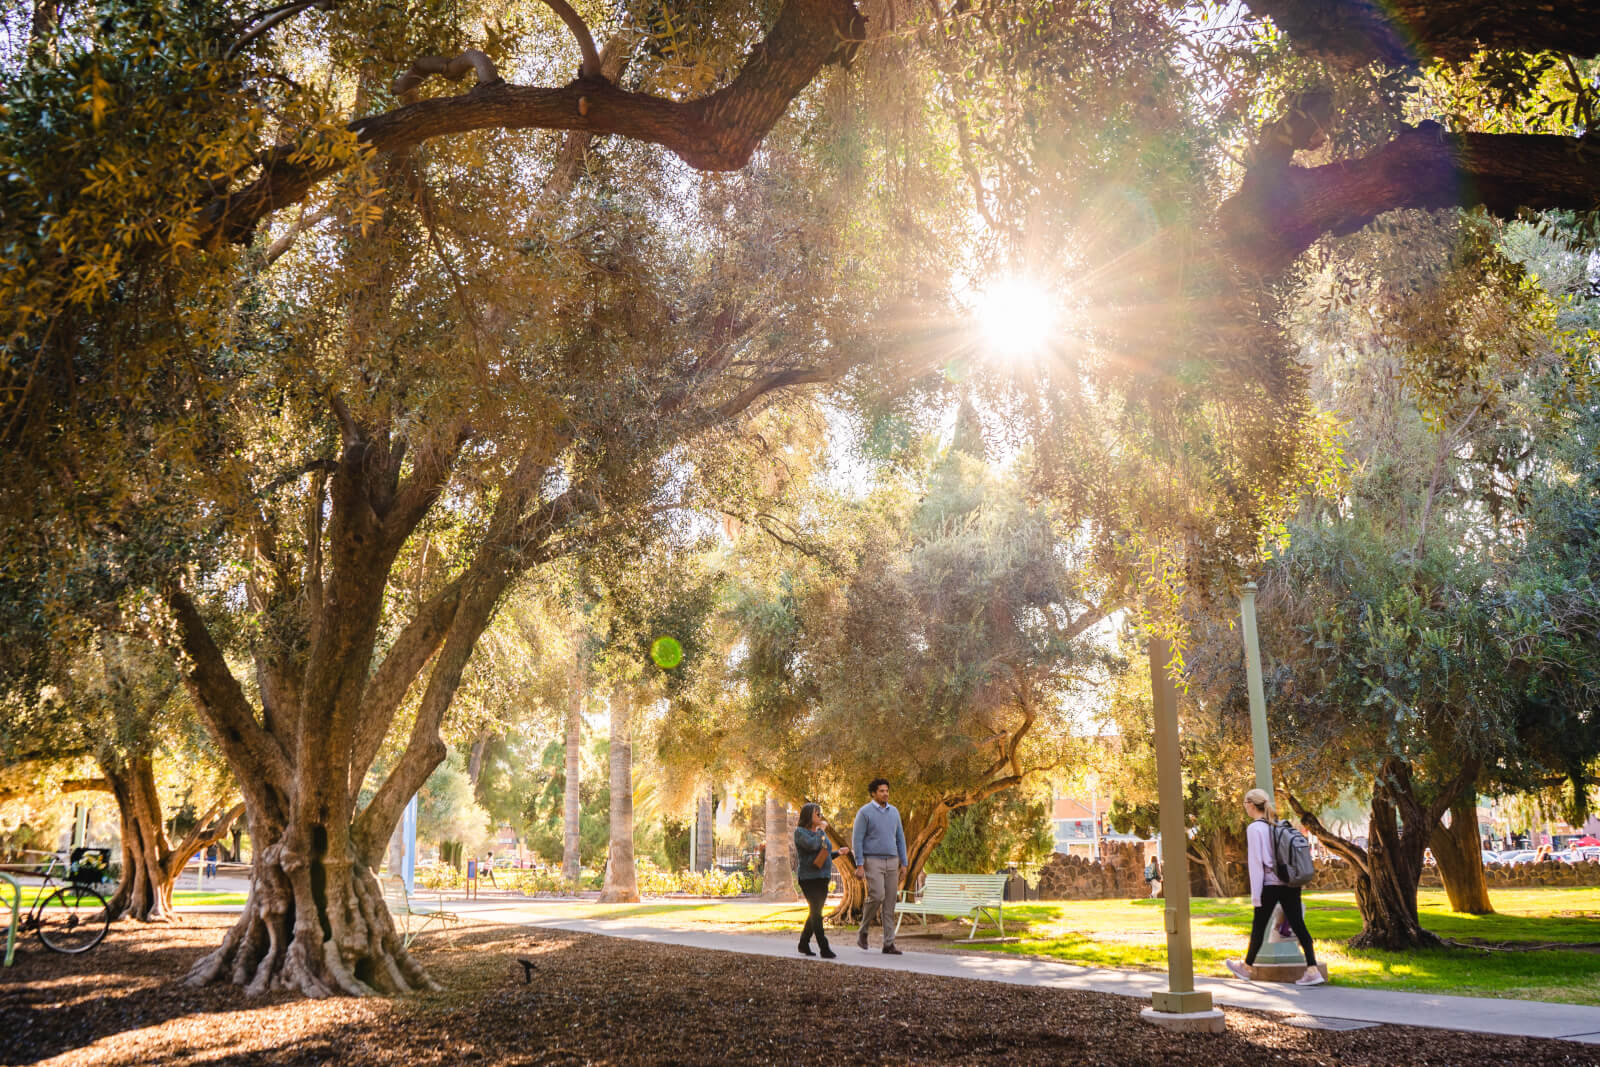 Three people walking on a sidewalk on the University of Arizona campus in Tucson, Arizona